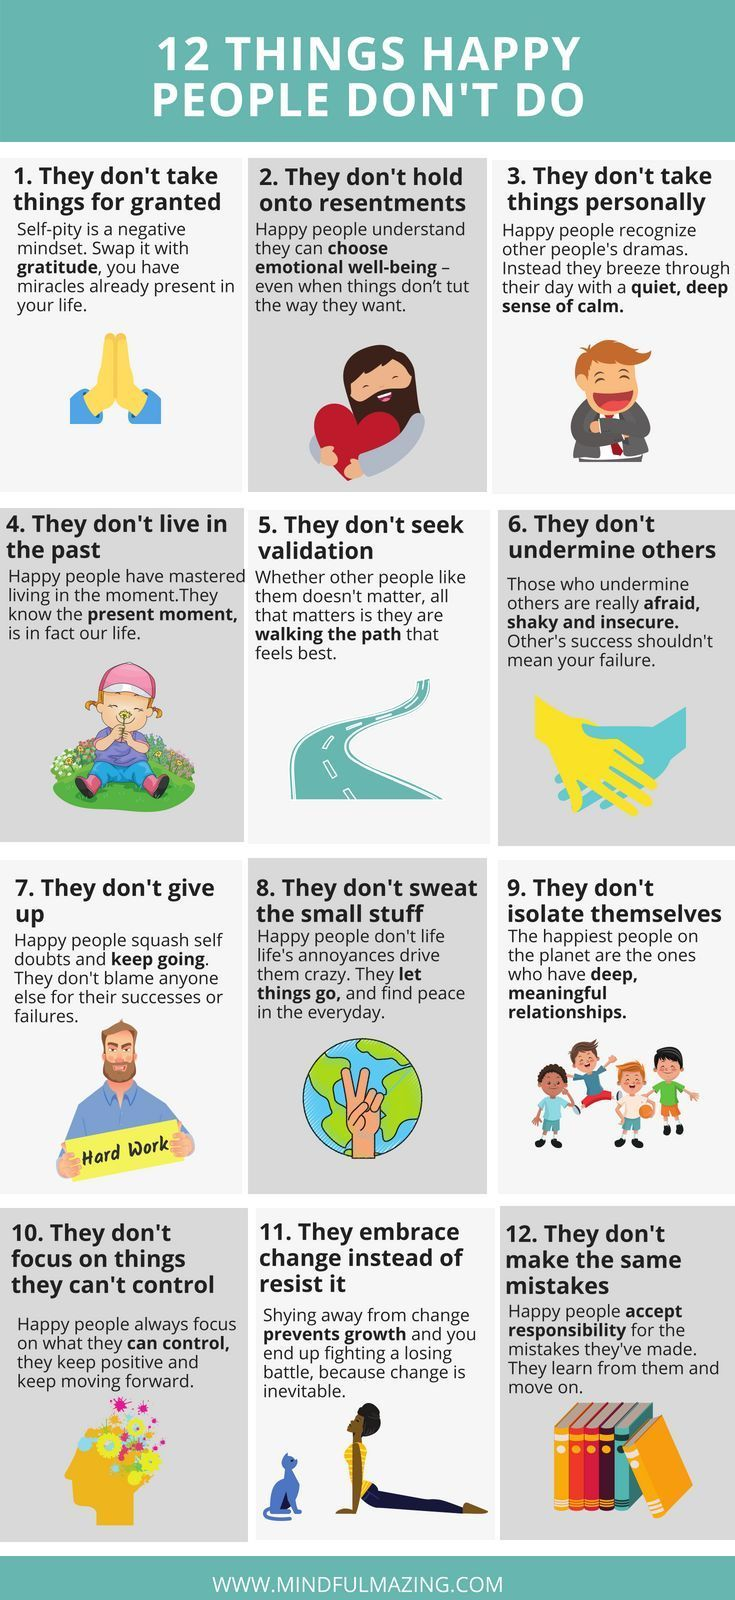 13 Things Happy People Don't Do